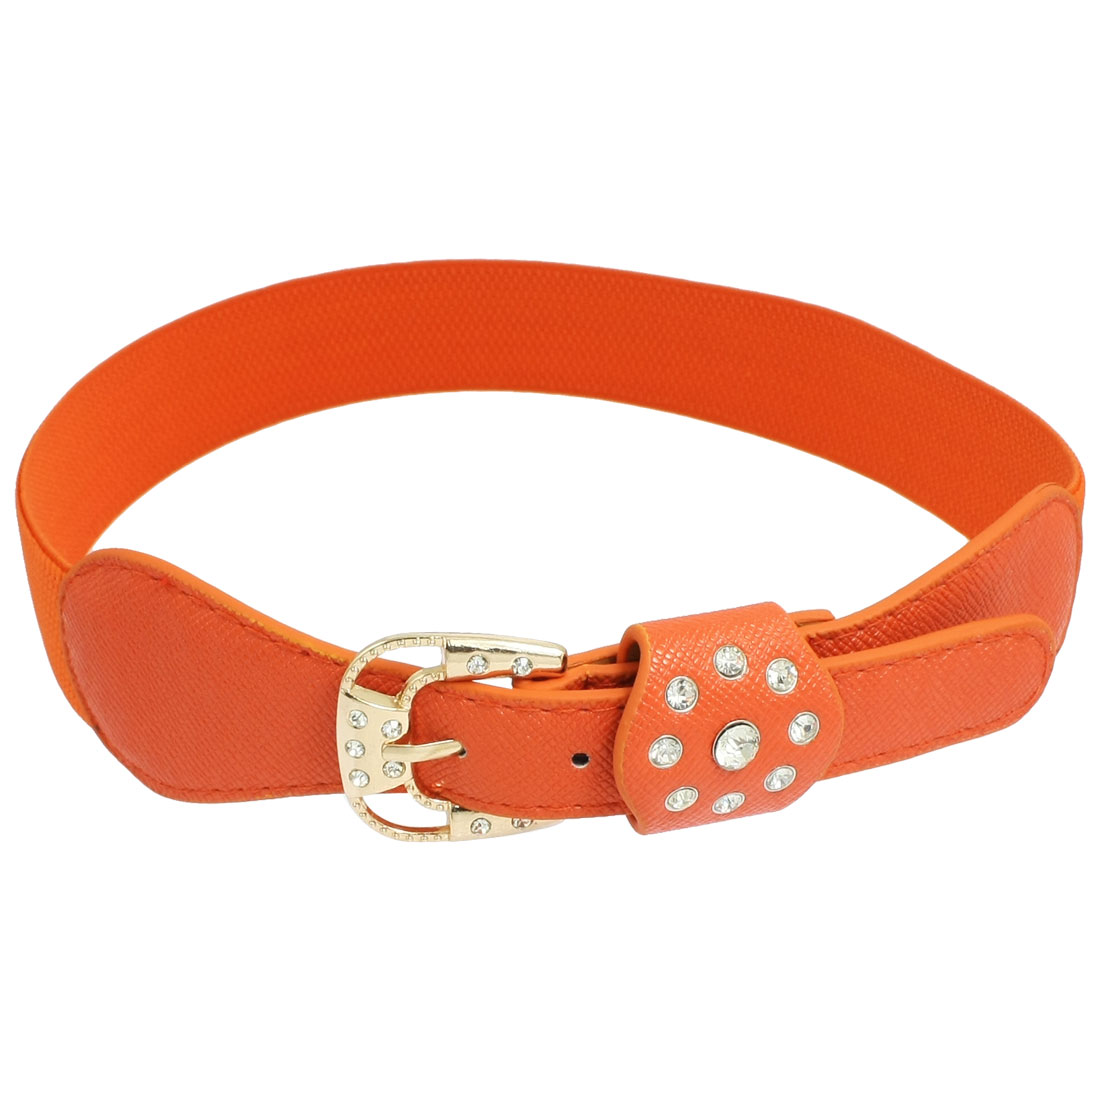 Woman Clear Rhinestone Gold Tone Buckle Orange Faux Leather Stretch Waistband